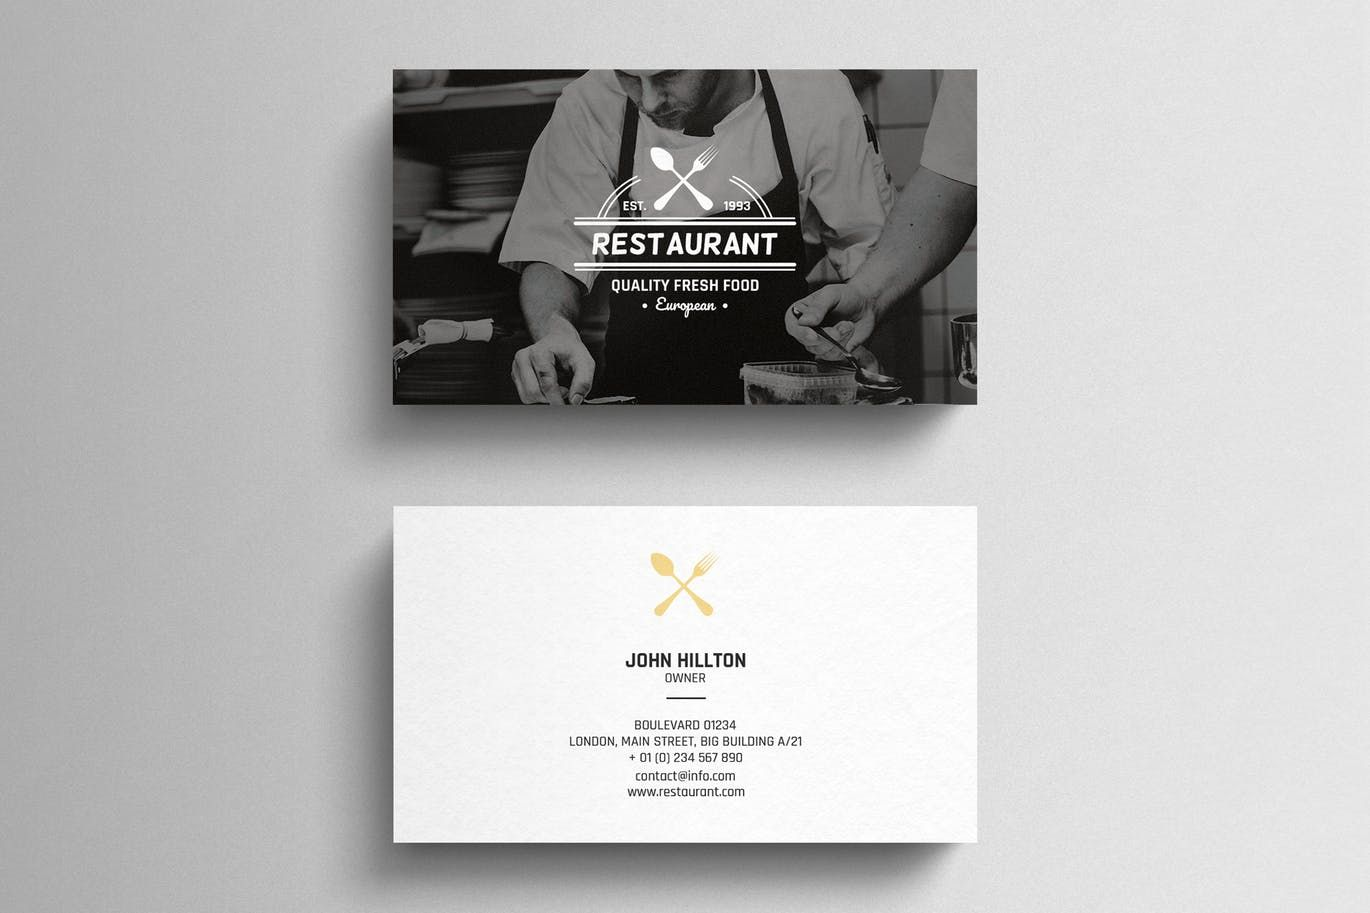 Restaurant Business Card Template By Eightonesixstudios On Envato Elements Restaurant Business Cards Business Card Psd Business Card Template Design